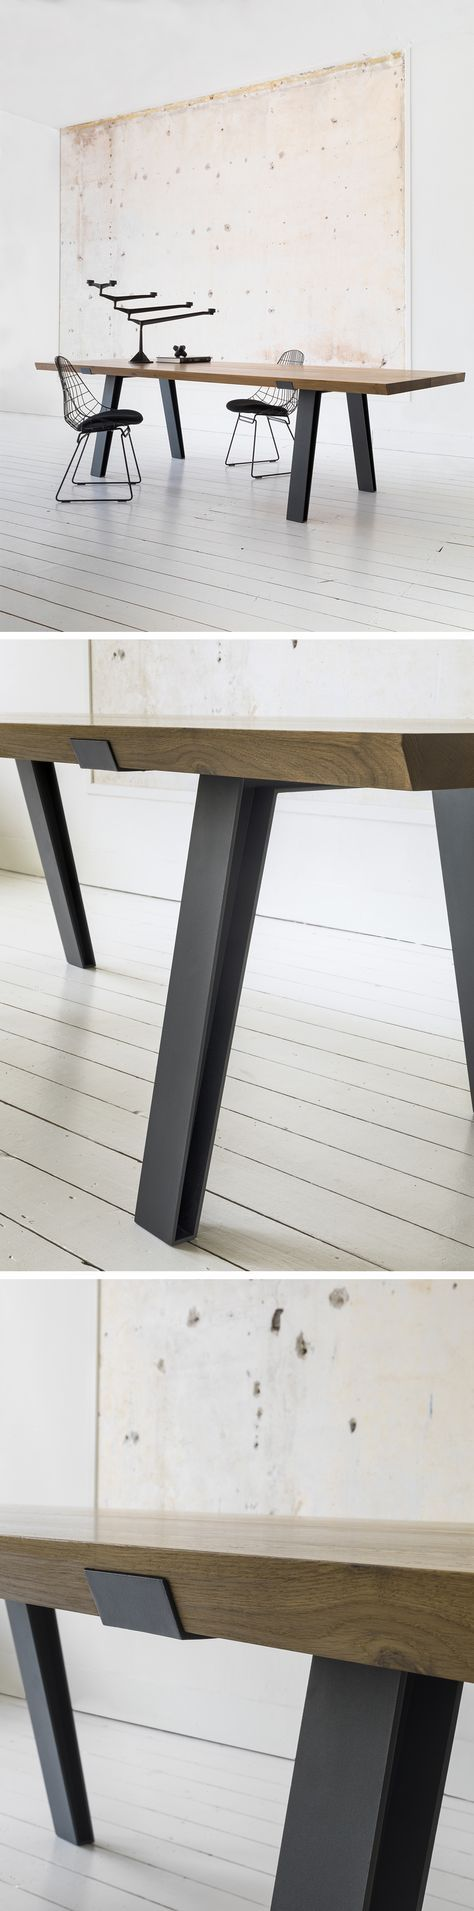 Qliv | Side-to-Side | Dining table A tabletop of solid French oak consisting of two halves lengthwise. Their exterior sides are milled to be seamlessly engaged by a bold steel frame created using special laser-cut technology. ( can be customize )